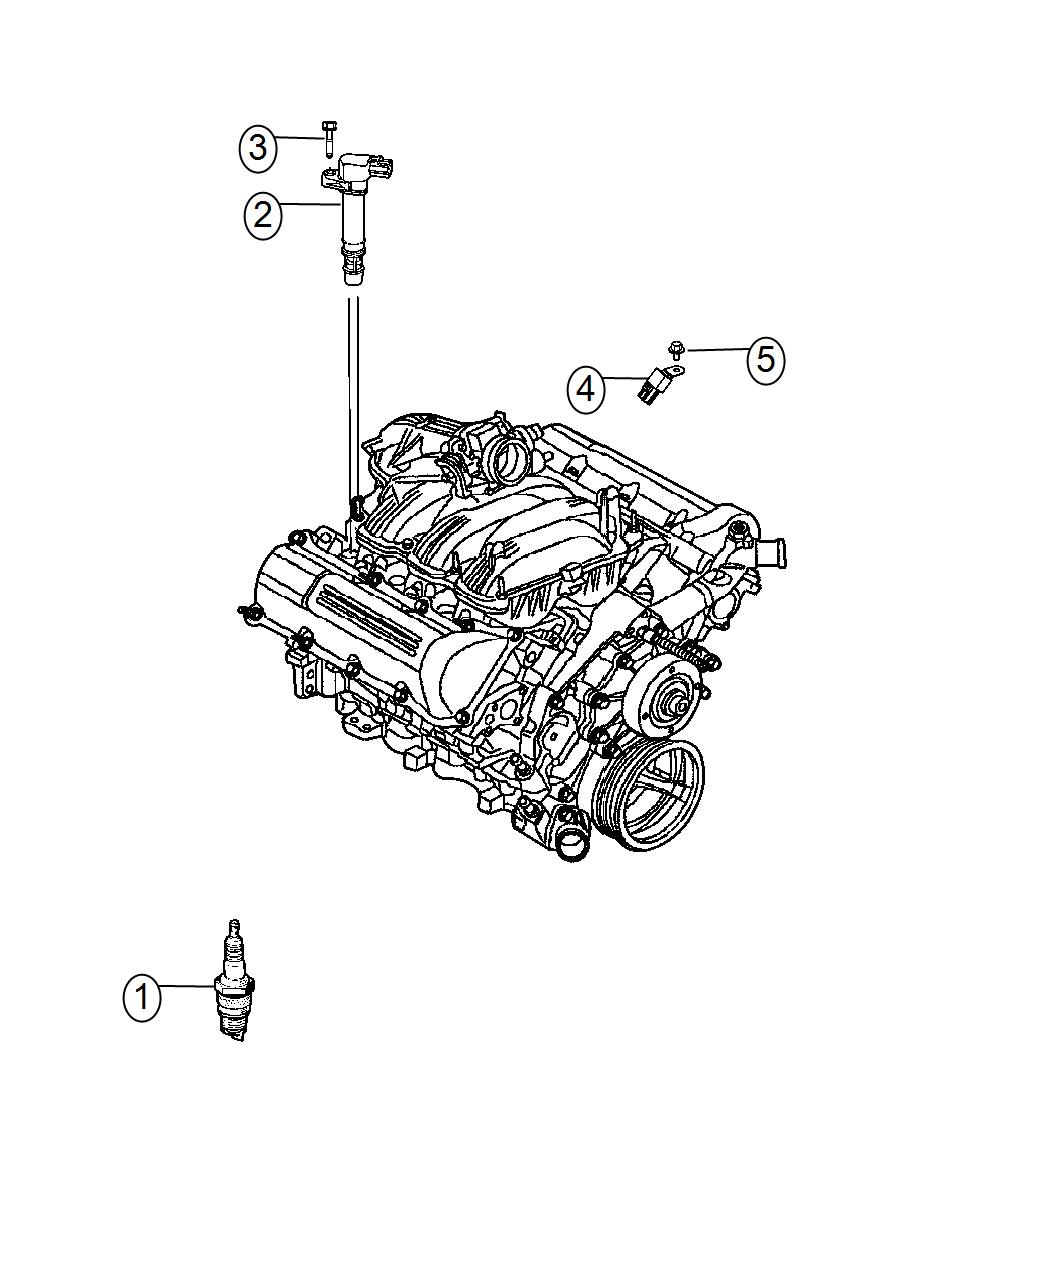 2016 Jeep Grand Cherokee Coil. Ignition. Plugs, spark